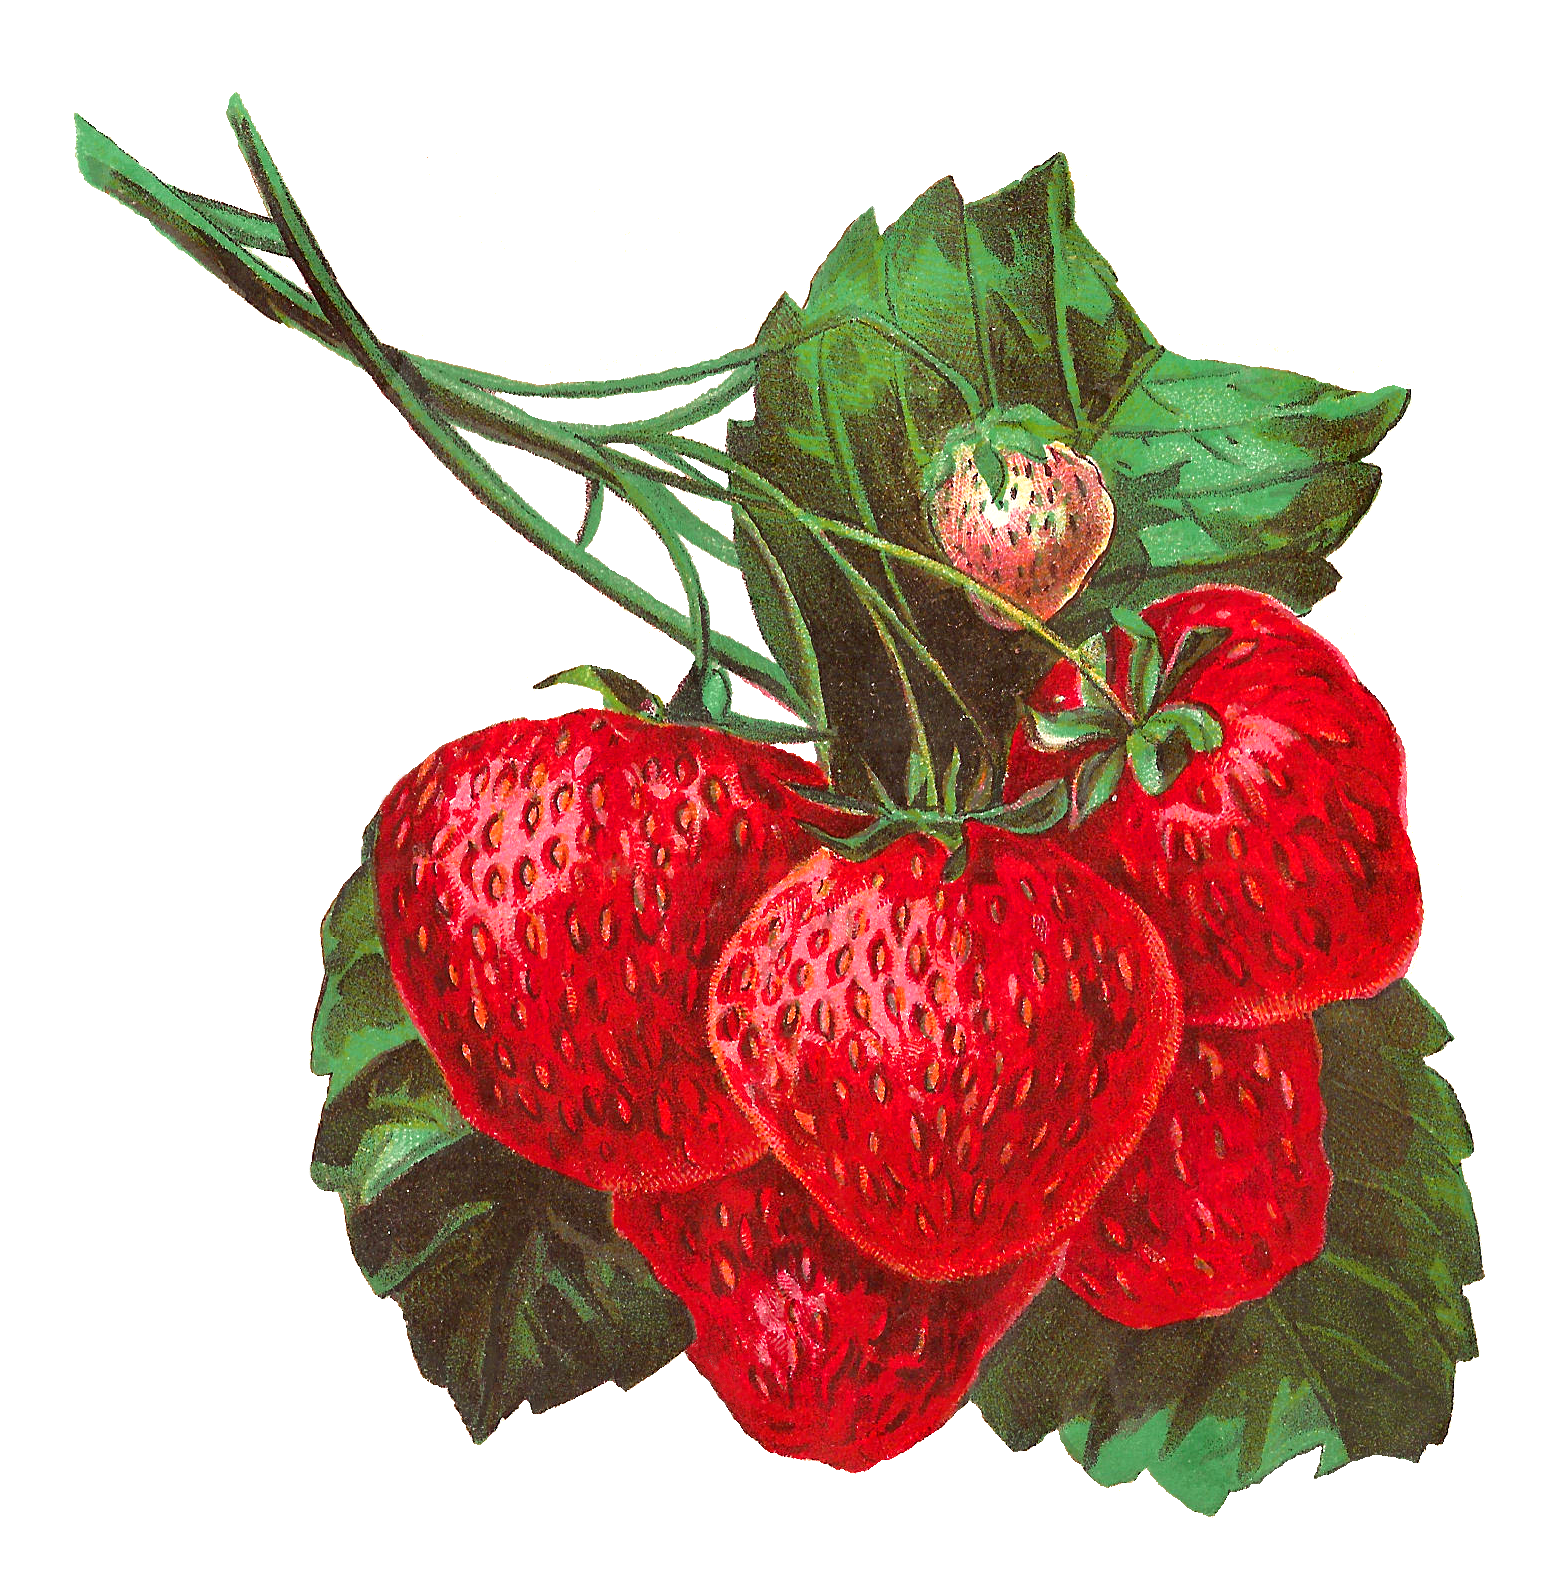 vector download Strawberries clipart strawberry leave FREE for download on rpelm